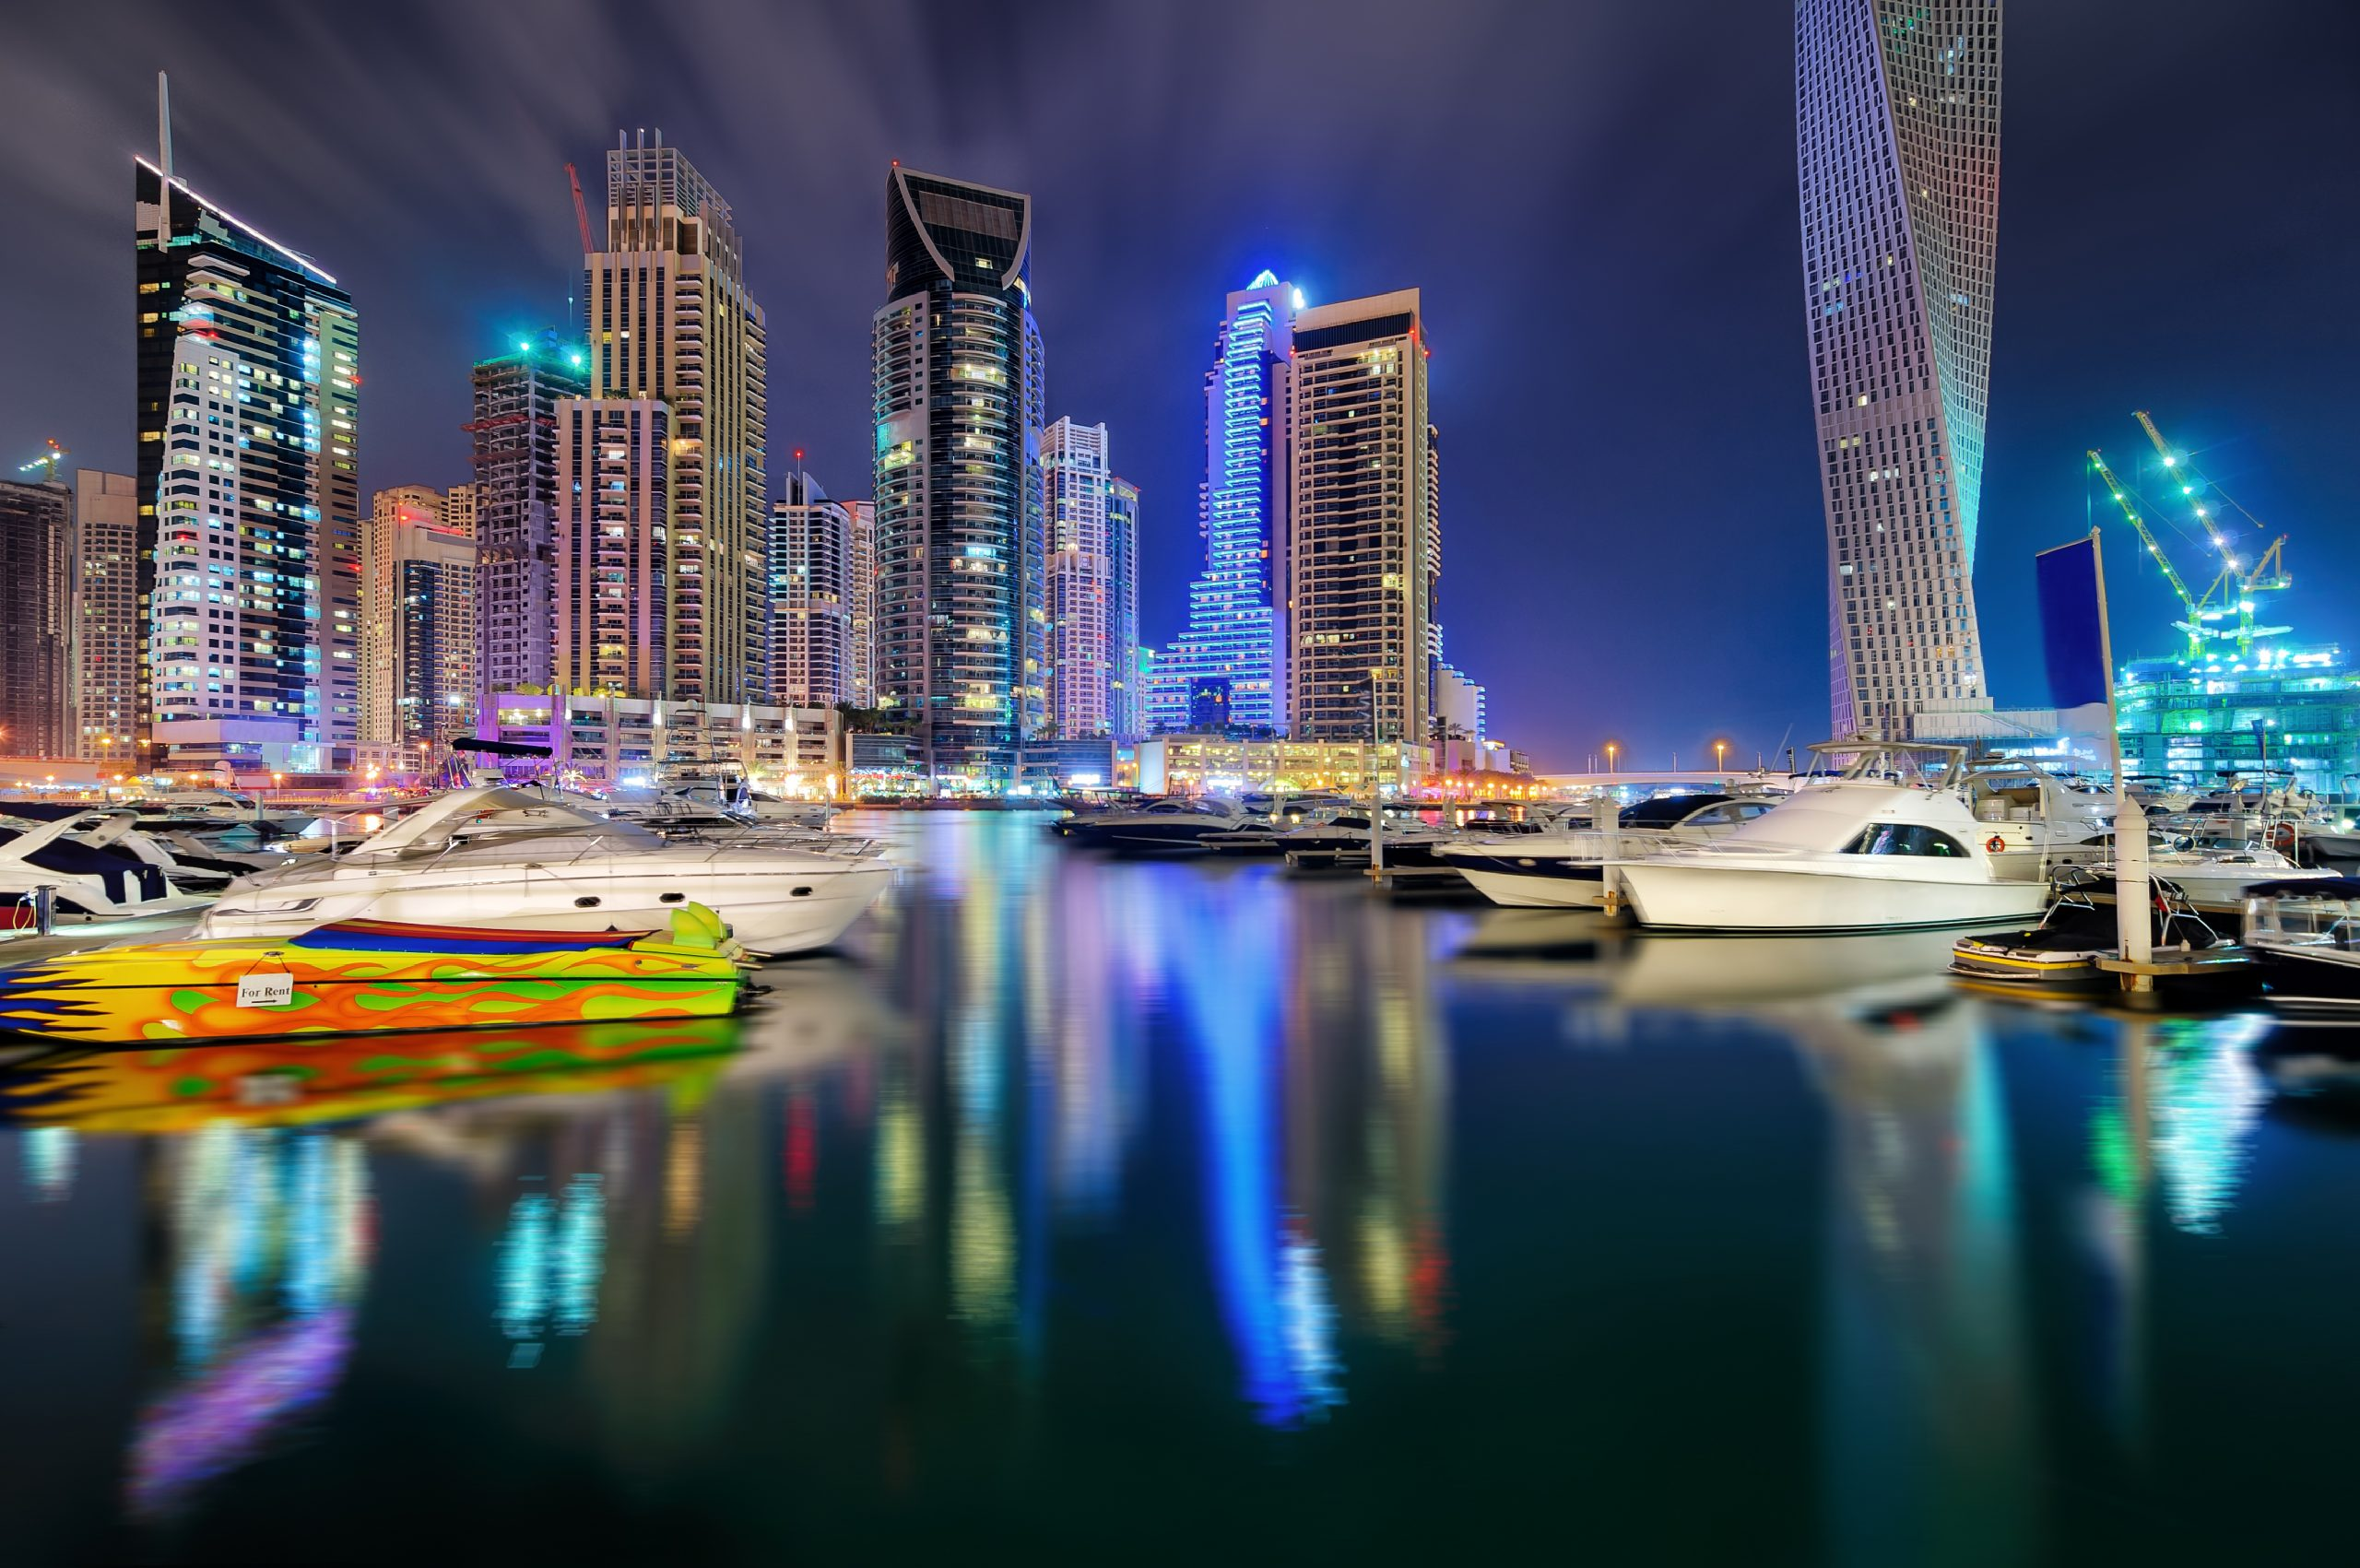 Colorful night dubai marina skyline, Dubai, United Arab Emirates